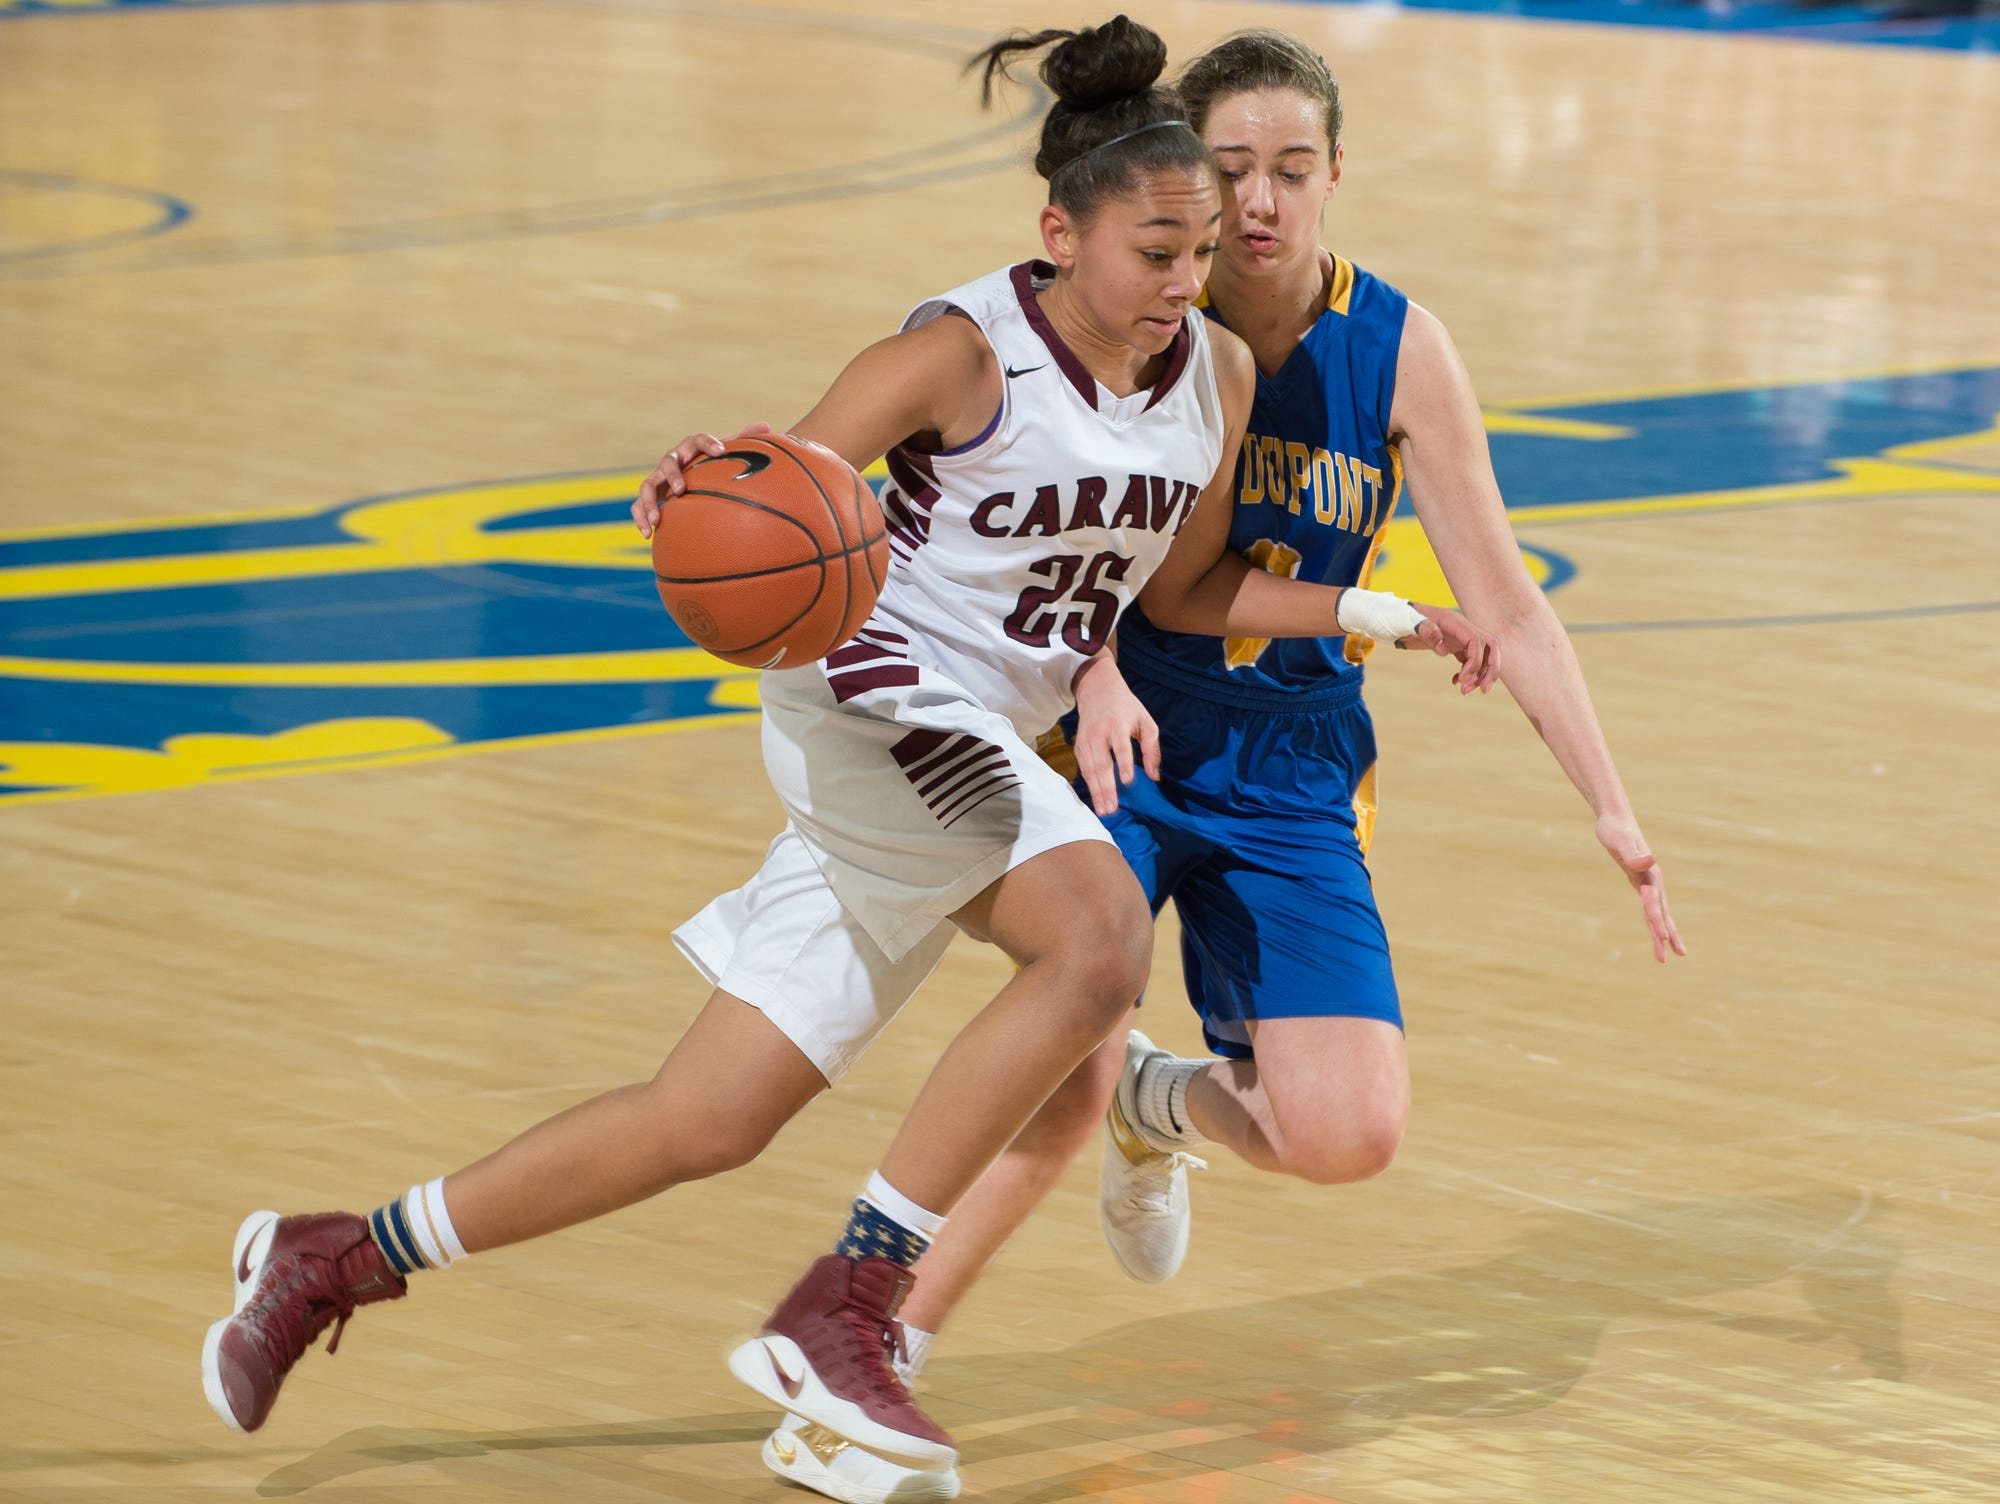 Caravel's Terea Hunt (25) drives to the hoop in the quarterfinals of DIAA Girls Basketball Tournament at the University of Delaware against A.I. duPont.